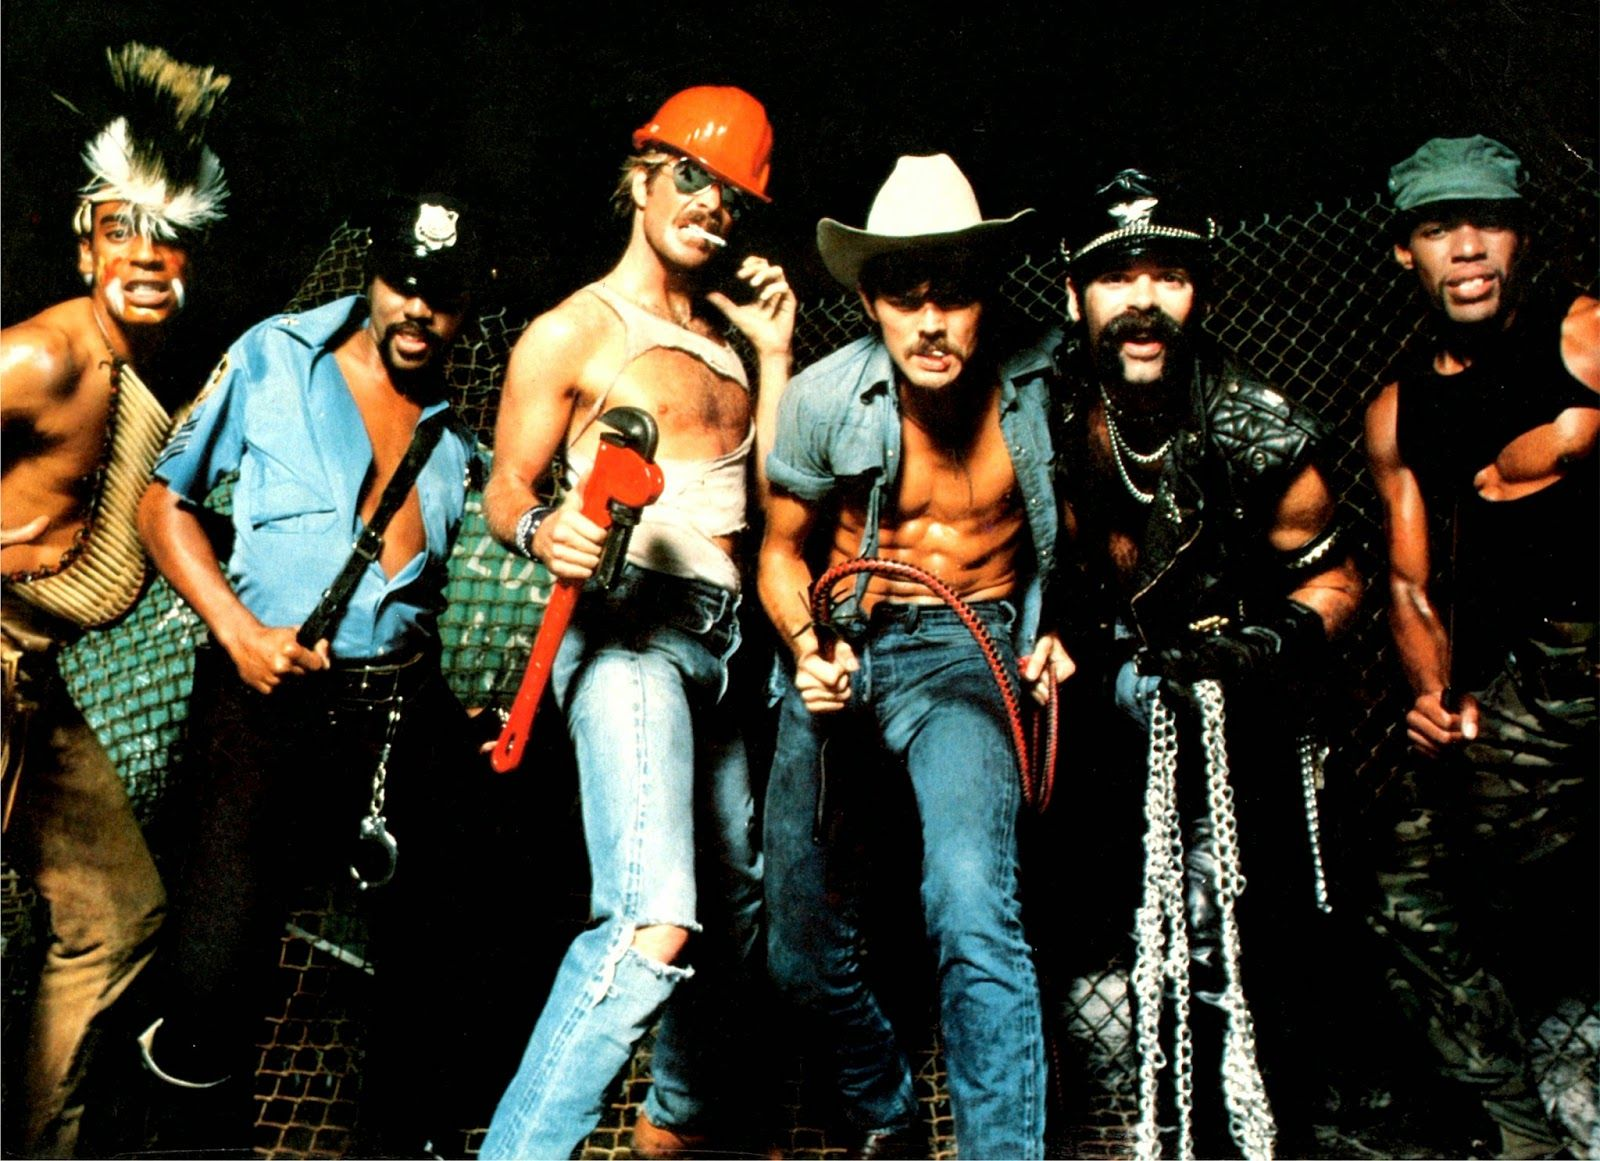 Village people gives trump ok to play gay anthems ymca, macho man